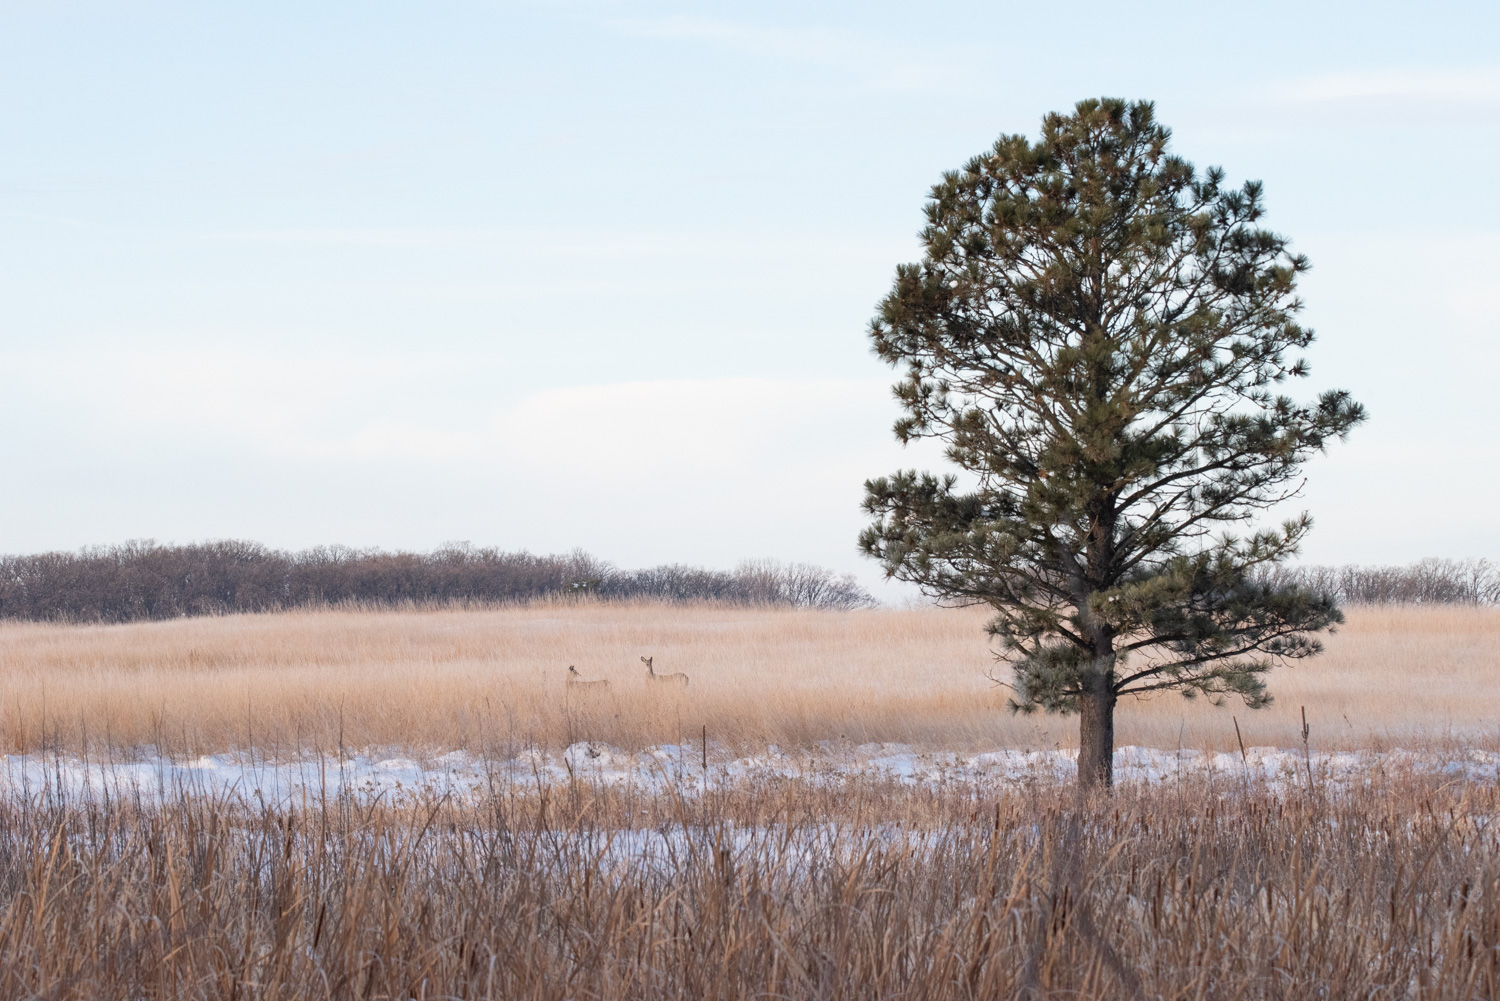 Image: Two White-tailed Deer observe their surroundings before moving through a tallgrass prairie.